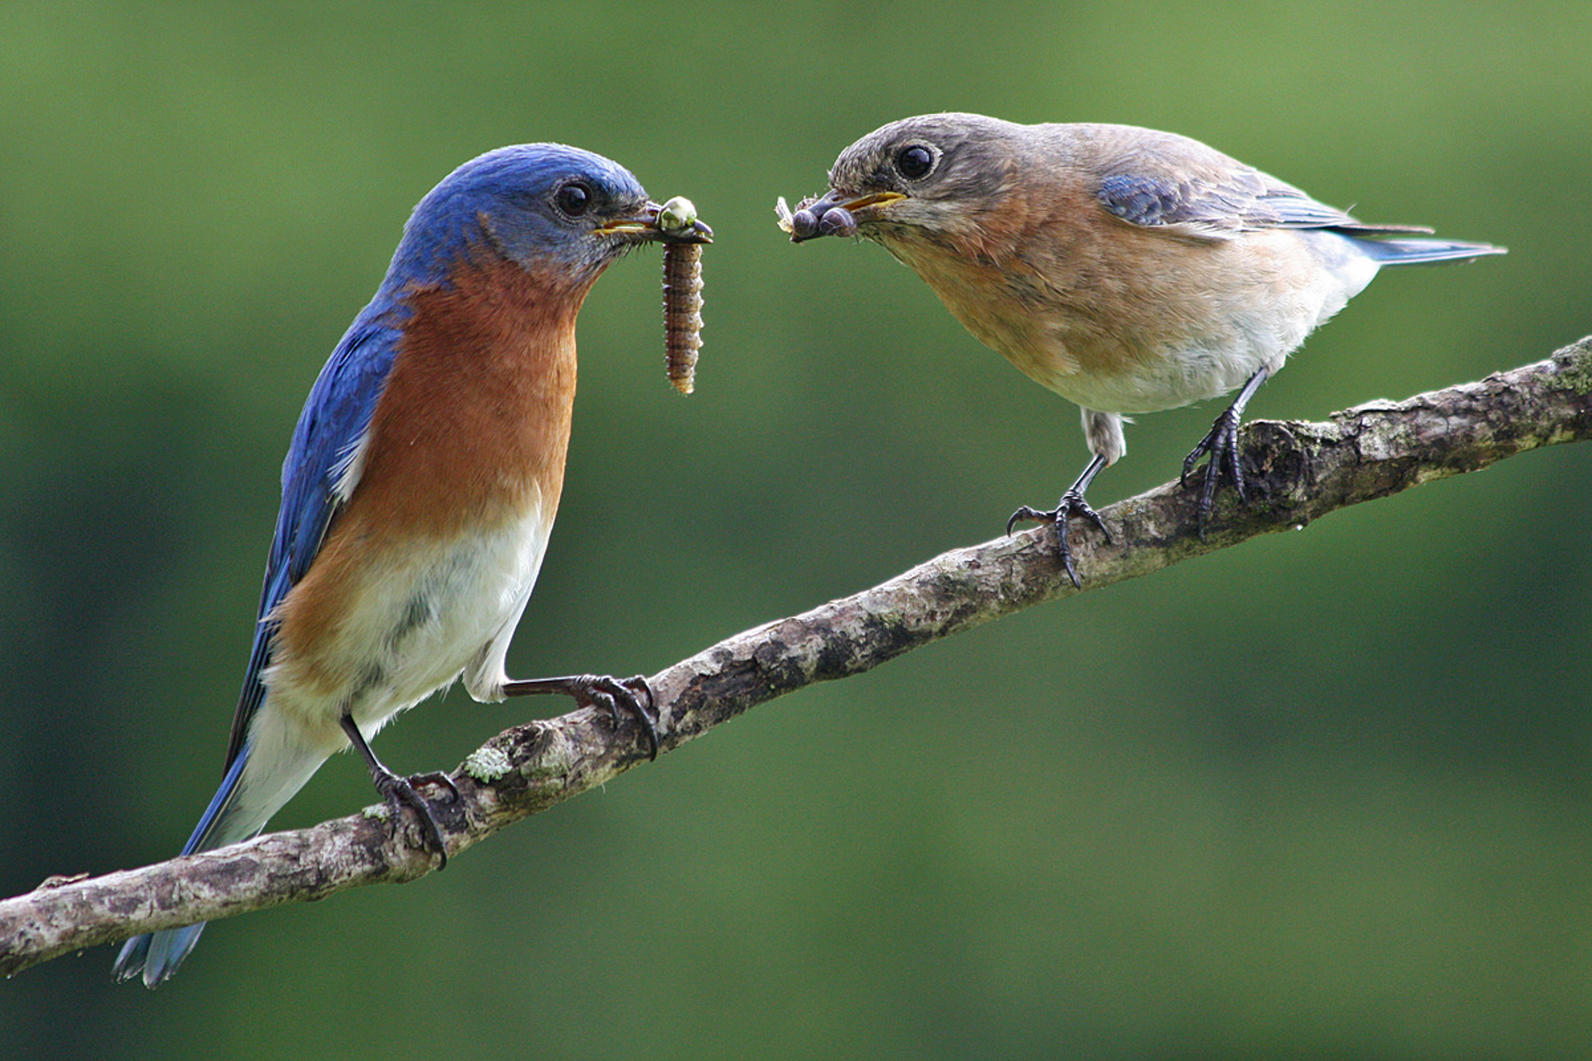 An Eastern Bluebird feeding a fat grub to its baby.